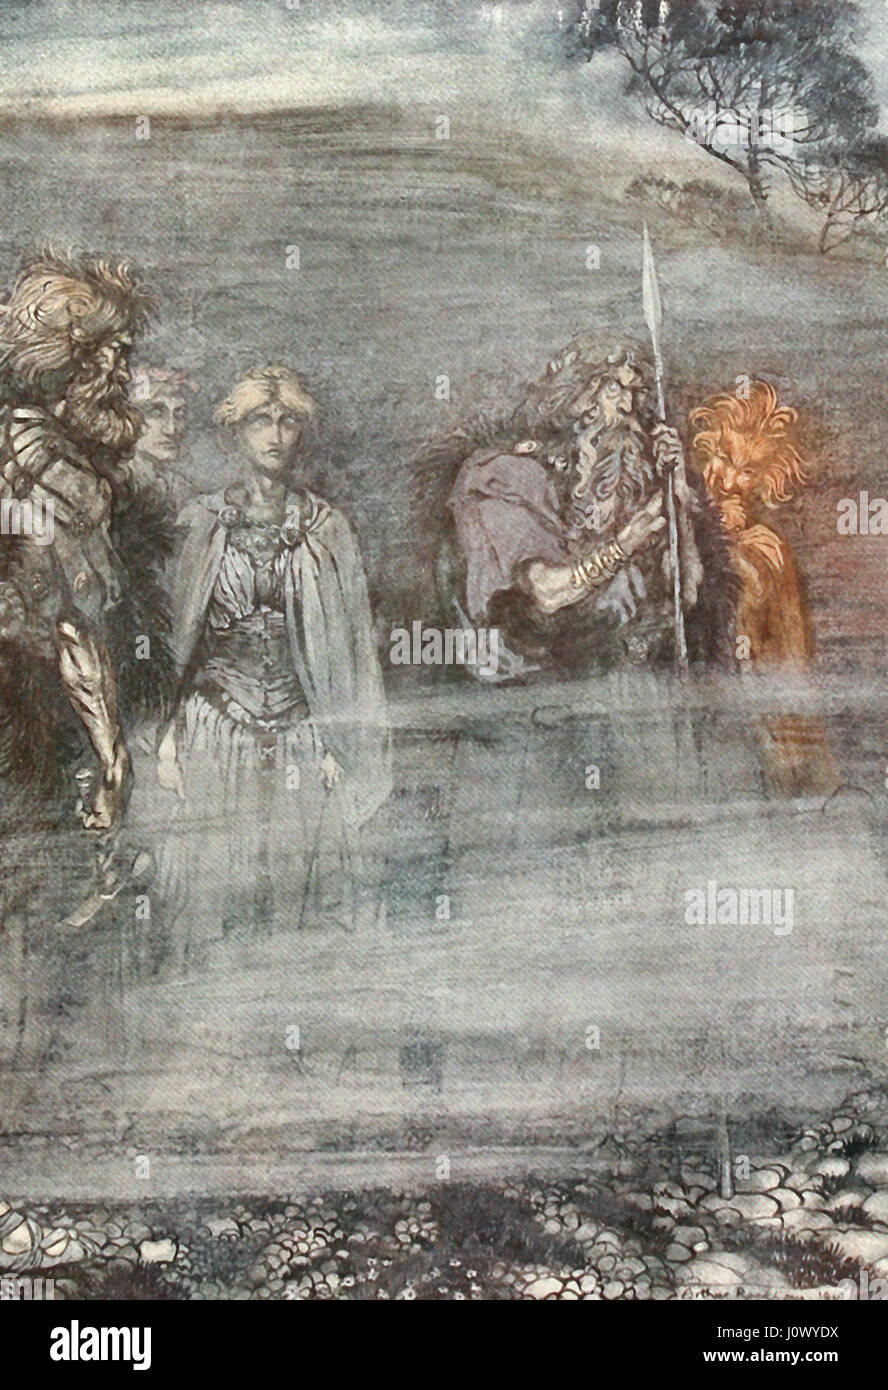 The Gods grow wan and aged at the loss of Freia - Scene from Das Rheingold of Der Ring des Nibelungen (The Ring - Stock Image